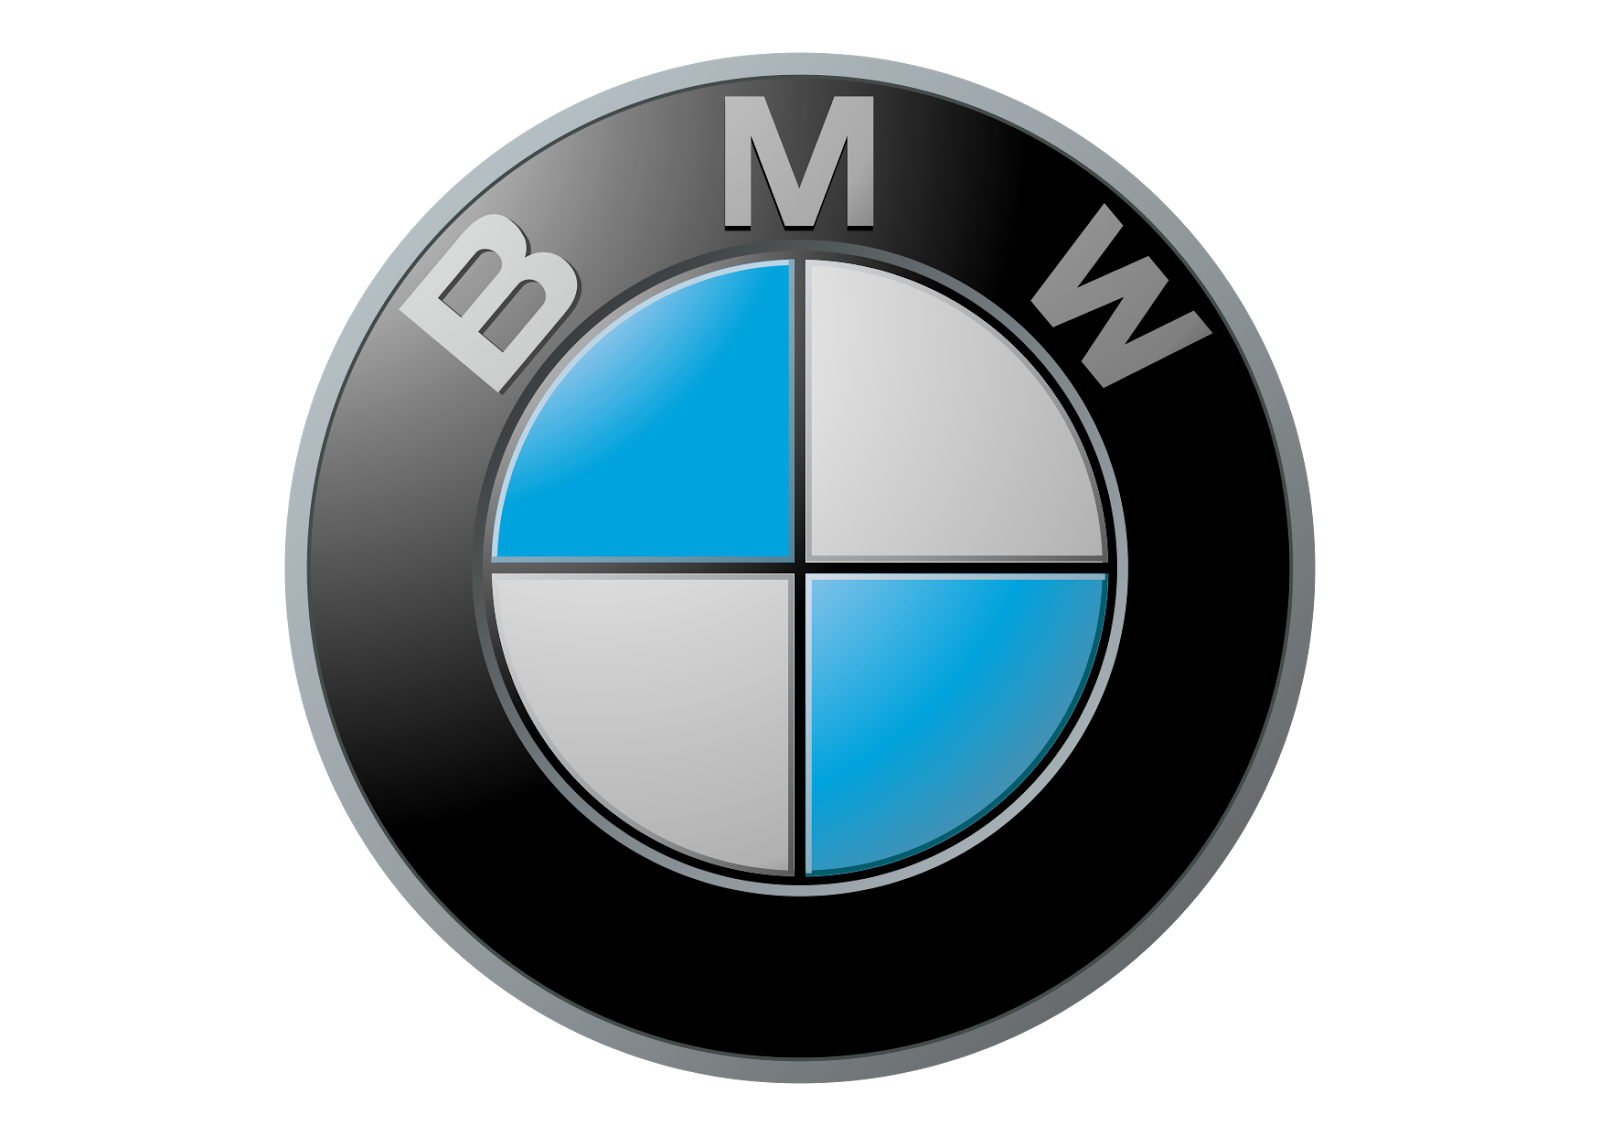 BMW-logo-vector